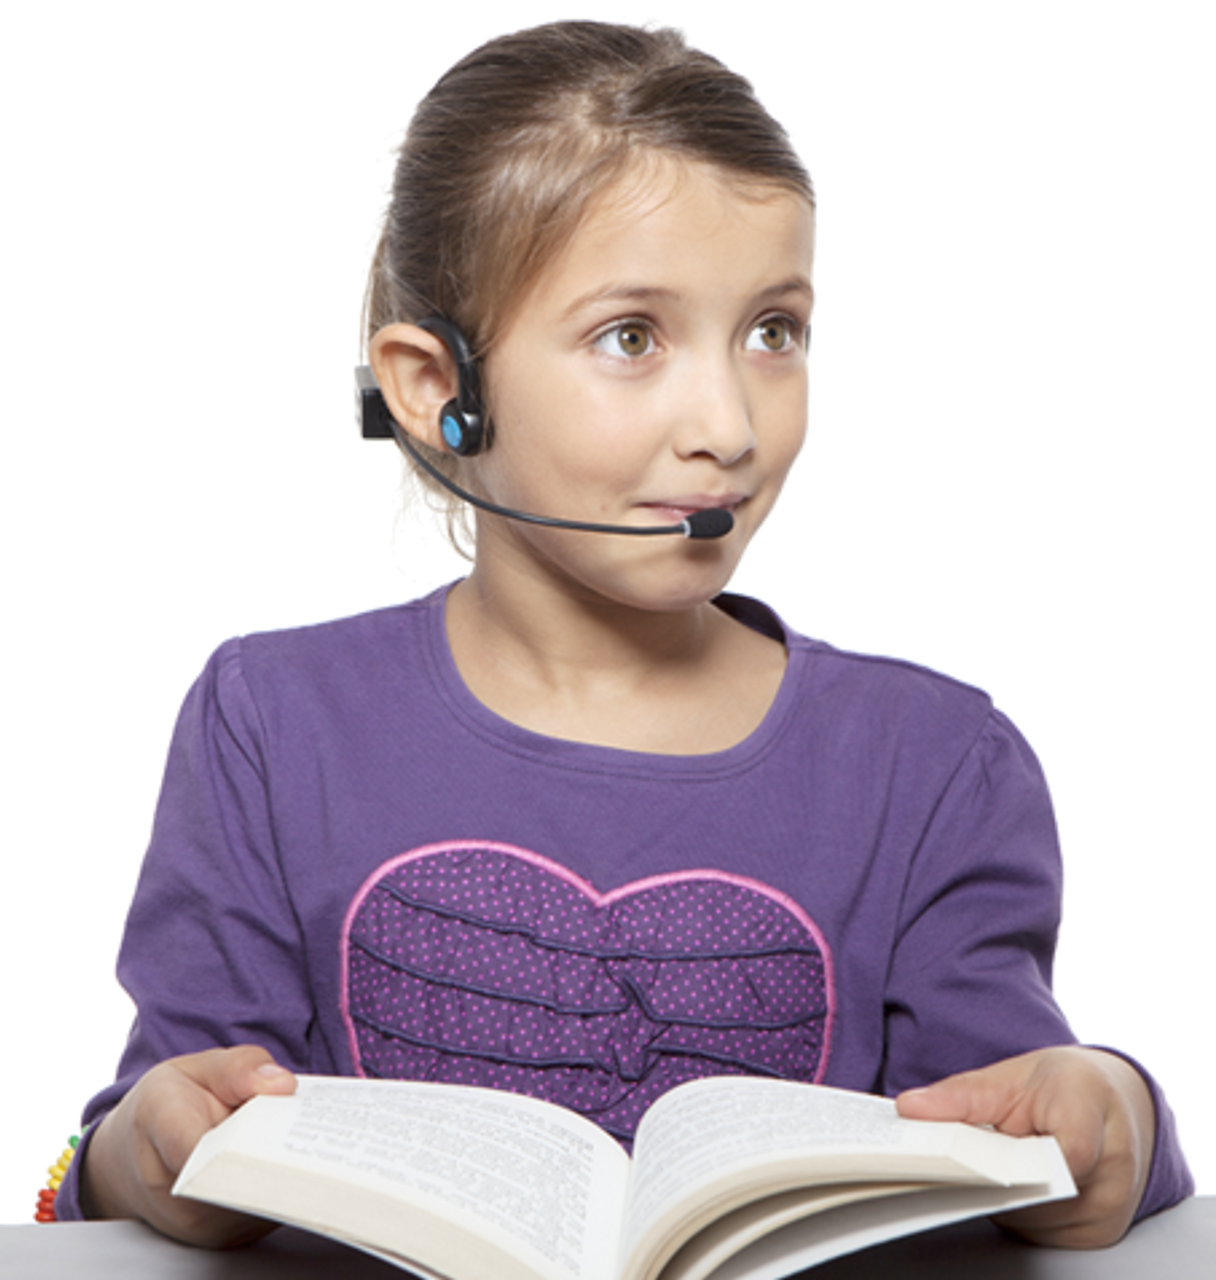 Forbrain Auditory Feedback Headphones Equipped with Bone Conduction - To enhance Speech, Memory and Attention